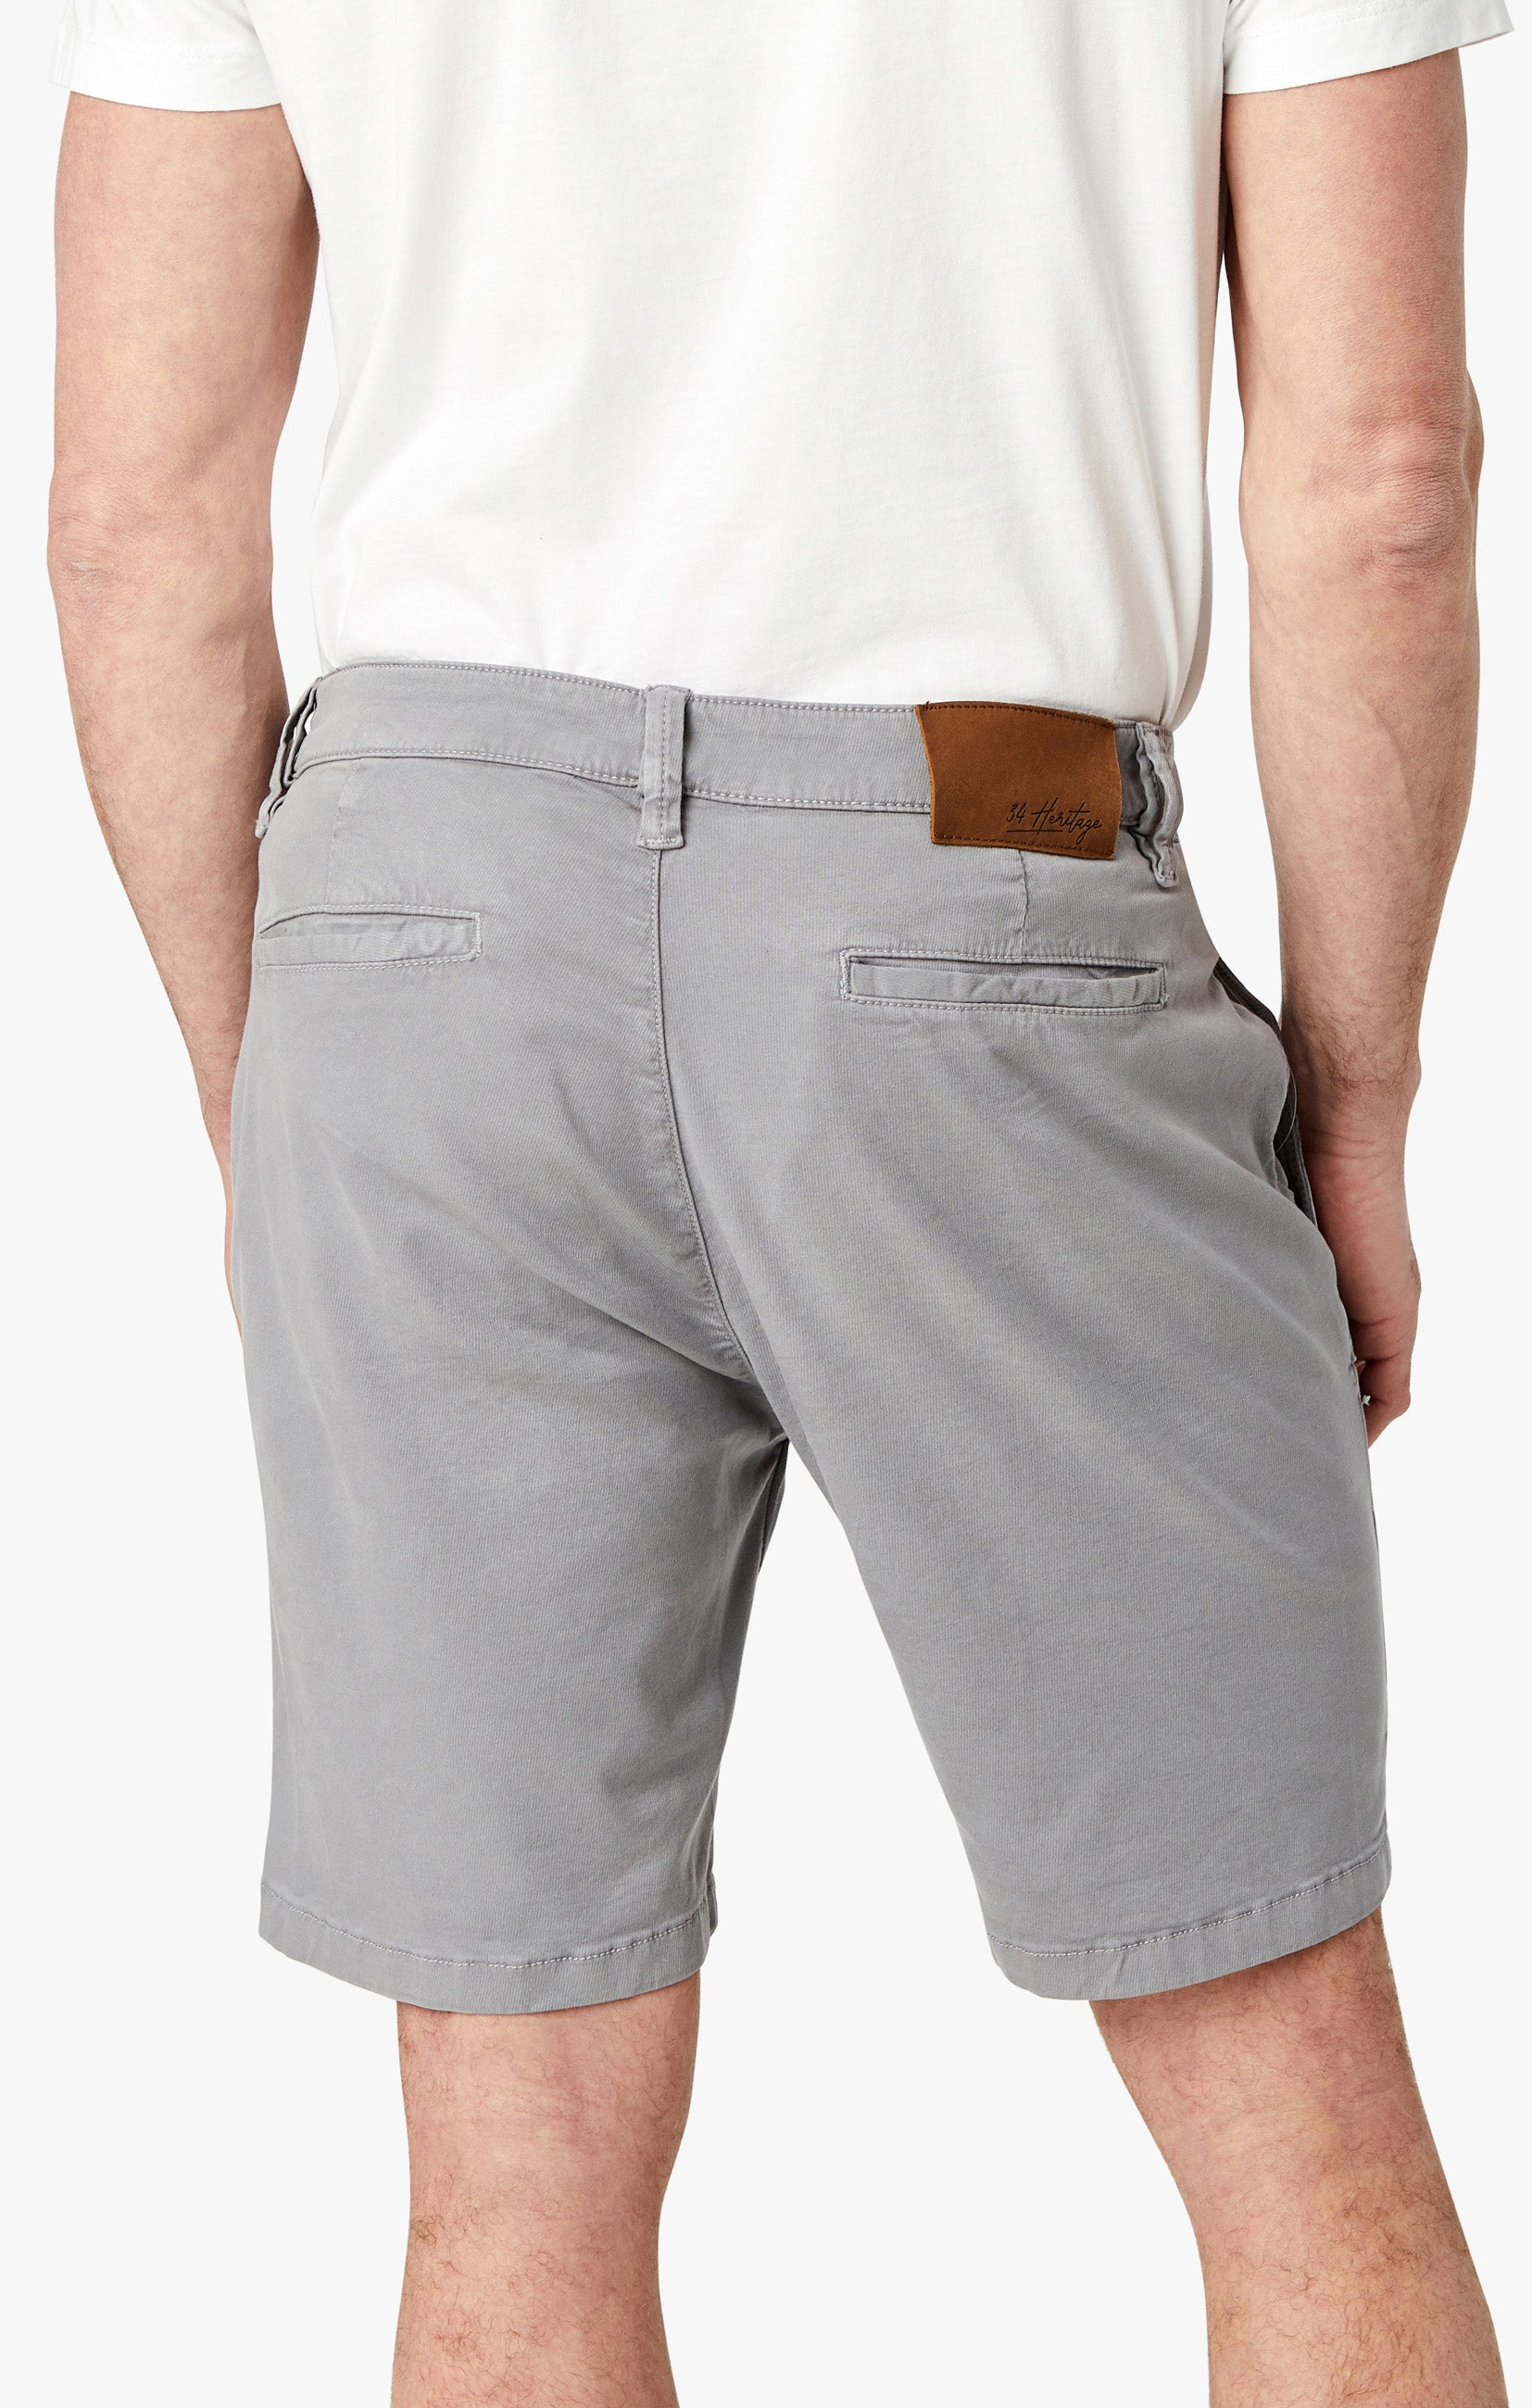 Nevada Shorts In Griffin Soft Touch Image 8